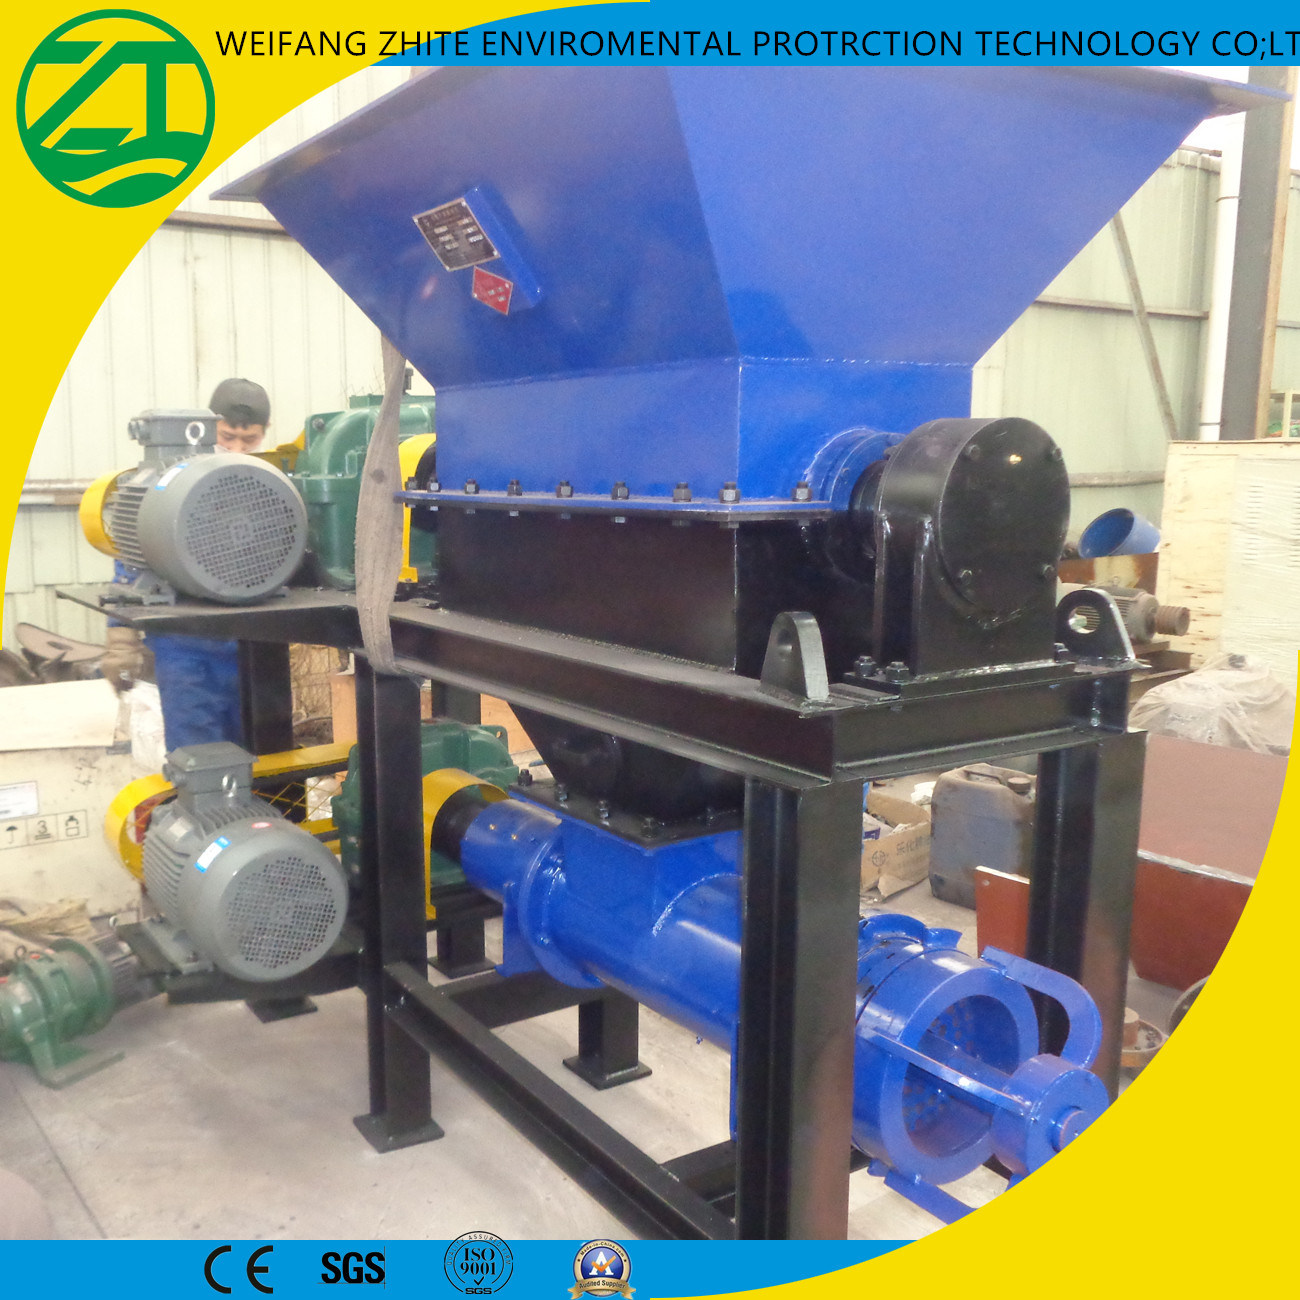 Industrial Shredder for Dead Pigs/Cows/Sheep/Animal Bone/Municipal Waste